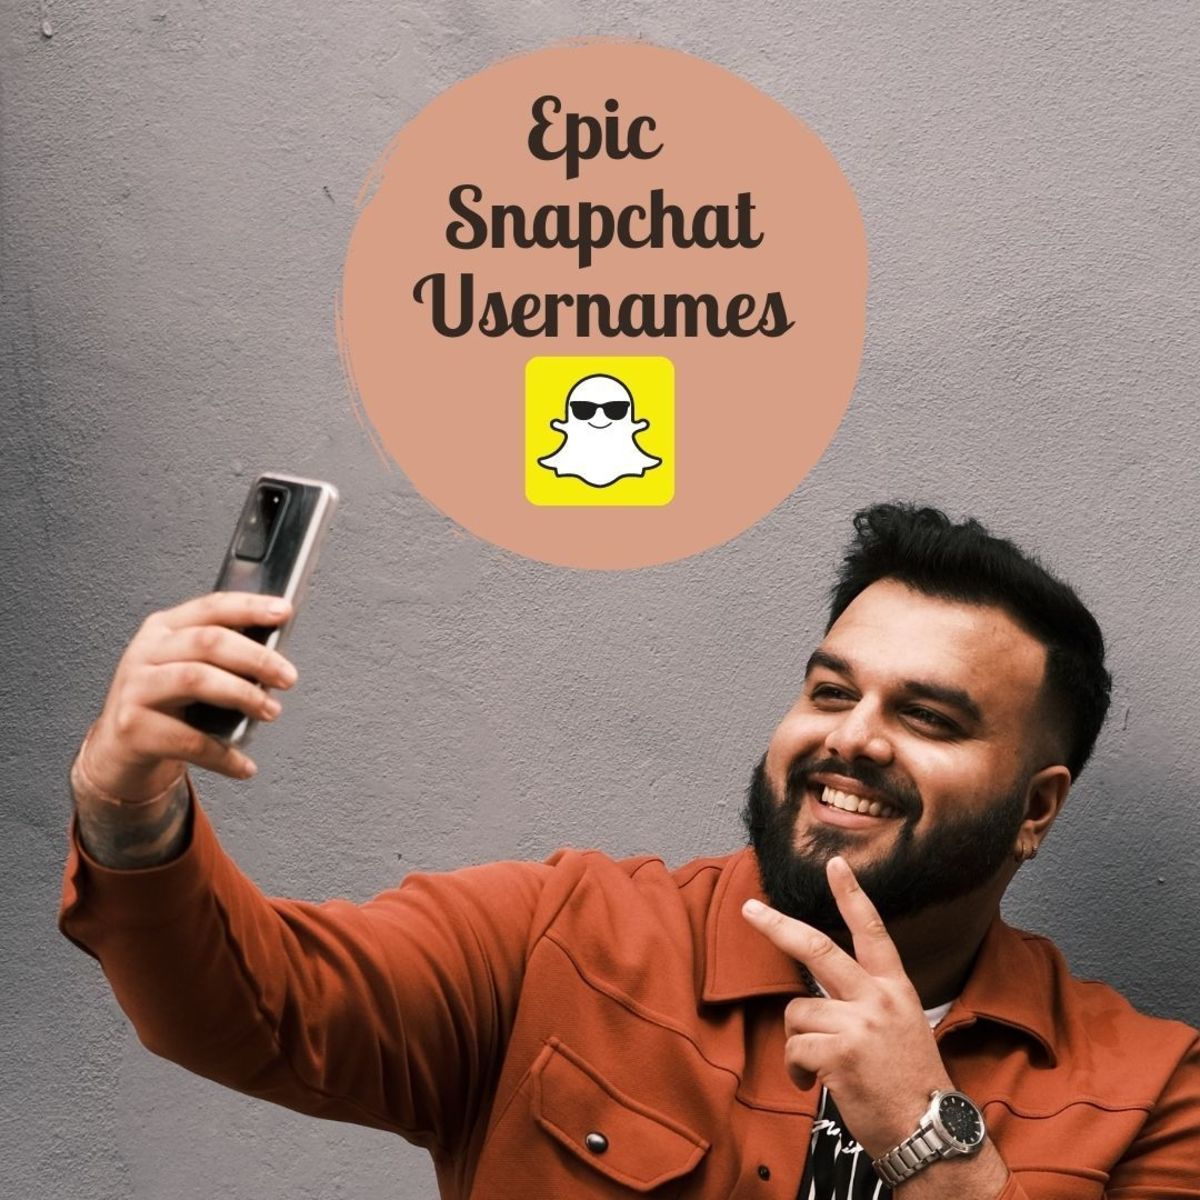 Pick a fun, interesting name for your Snapchat profile, or come up with a variant of your name—whatever suits you!